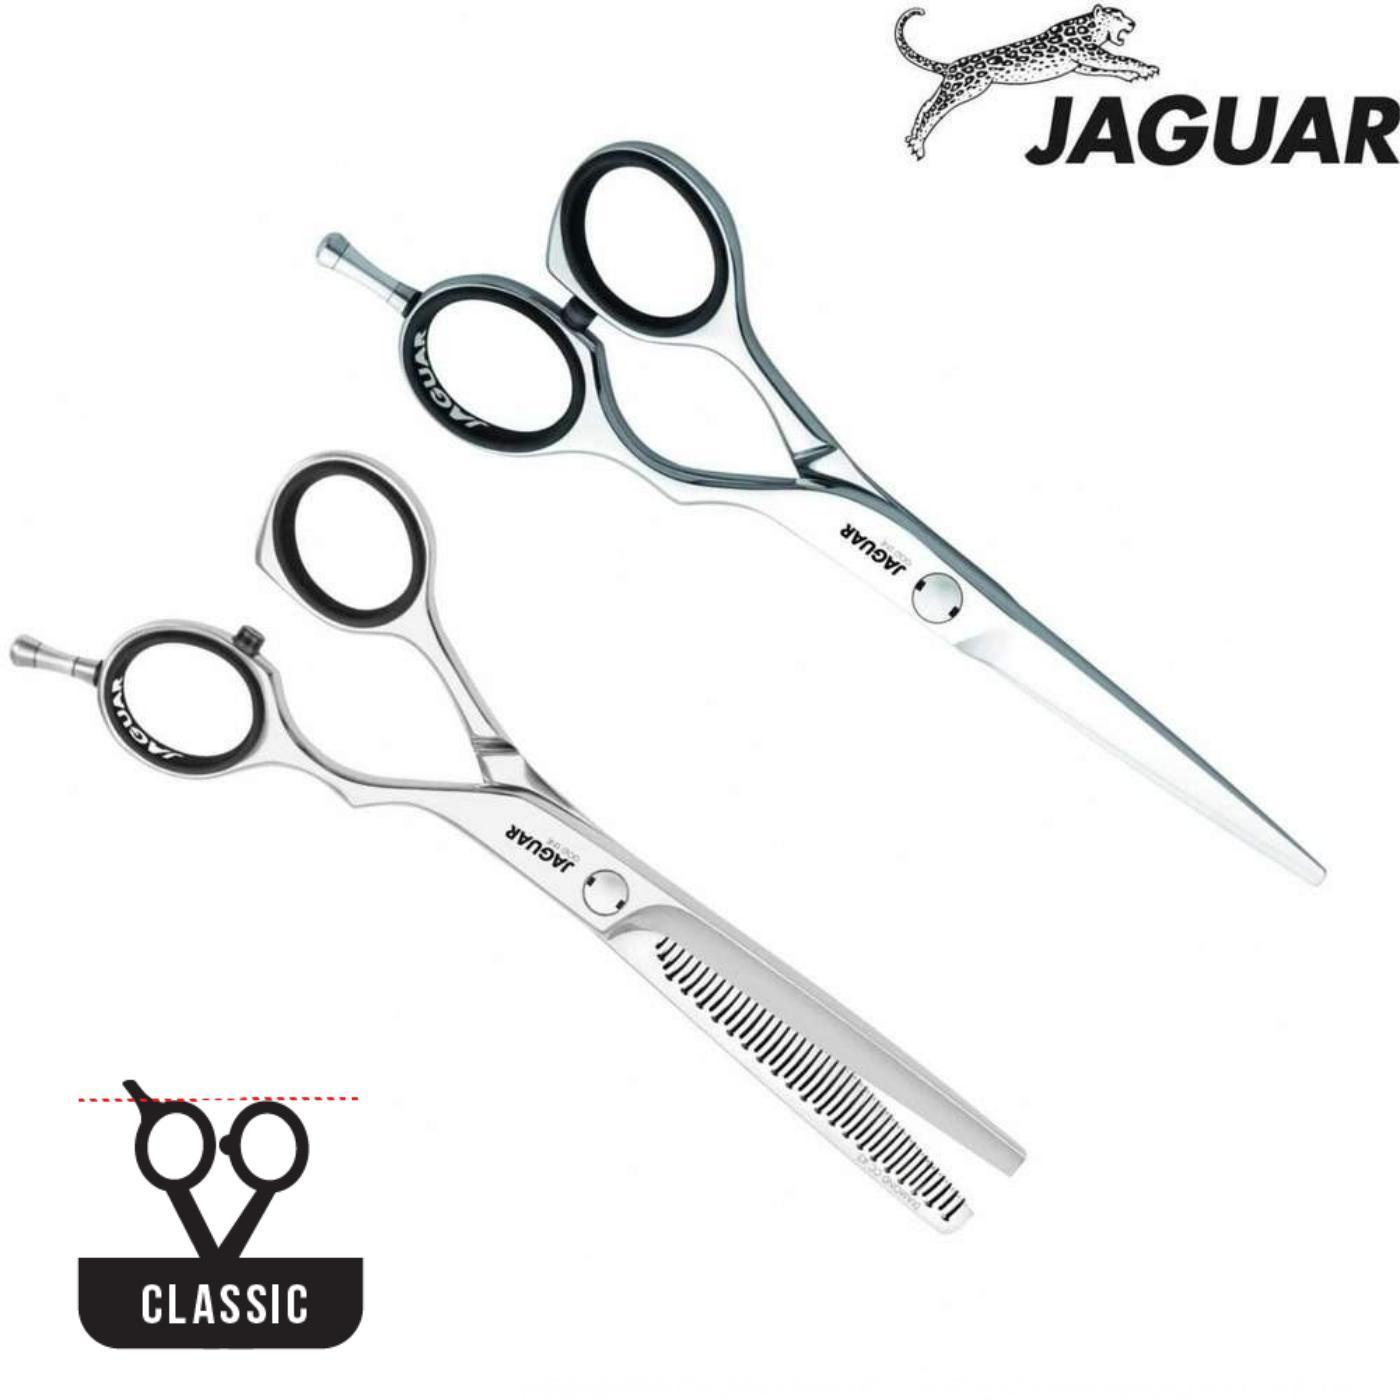 Jaguar Gold Line Diamond E Offset Cutting & Thinning Set - Japan Scissors